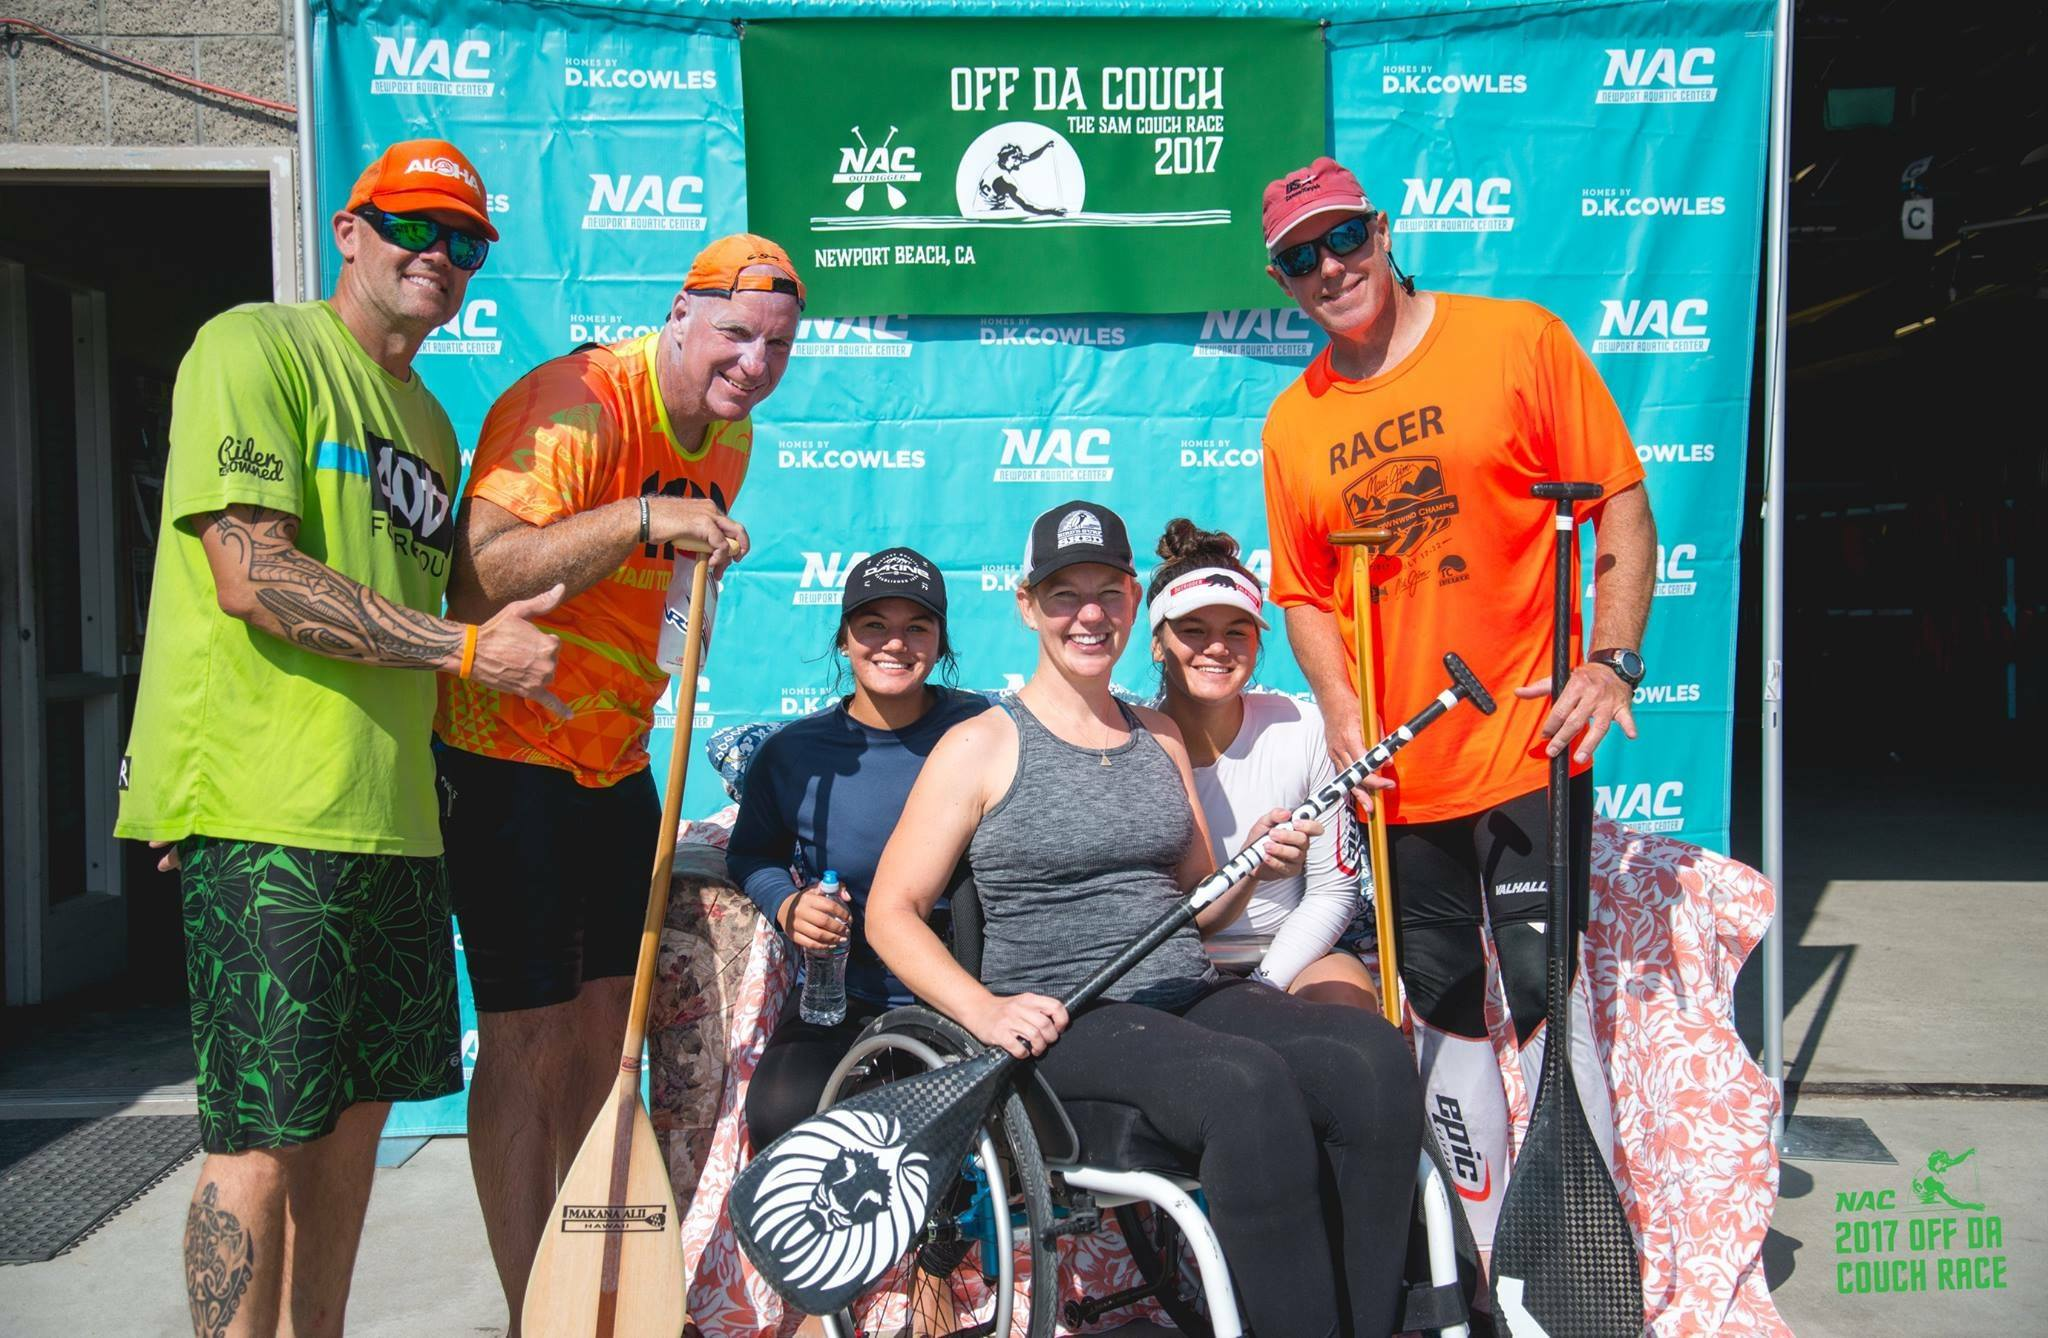 A great story from the weekend: This avid golfer and athlete in the middle, Hanna, was in a terrible accident just 8 months ago. On SATURDAY she raced amongst some of best athletes in the area during the 9 miles course! We are lucky to have a such a strong support circle in our community. Congratulations Hanna, we're cheering for ya! #homesbydkcowles  #offdacouch  #dkfindshomes  #newportaquaticcenter